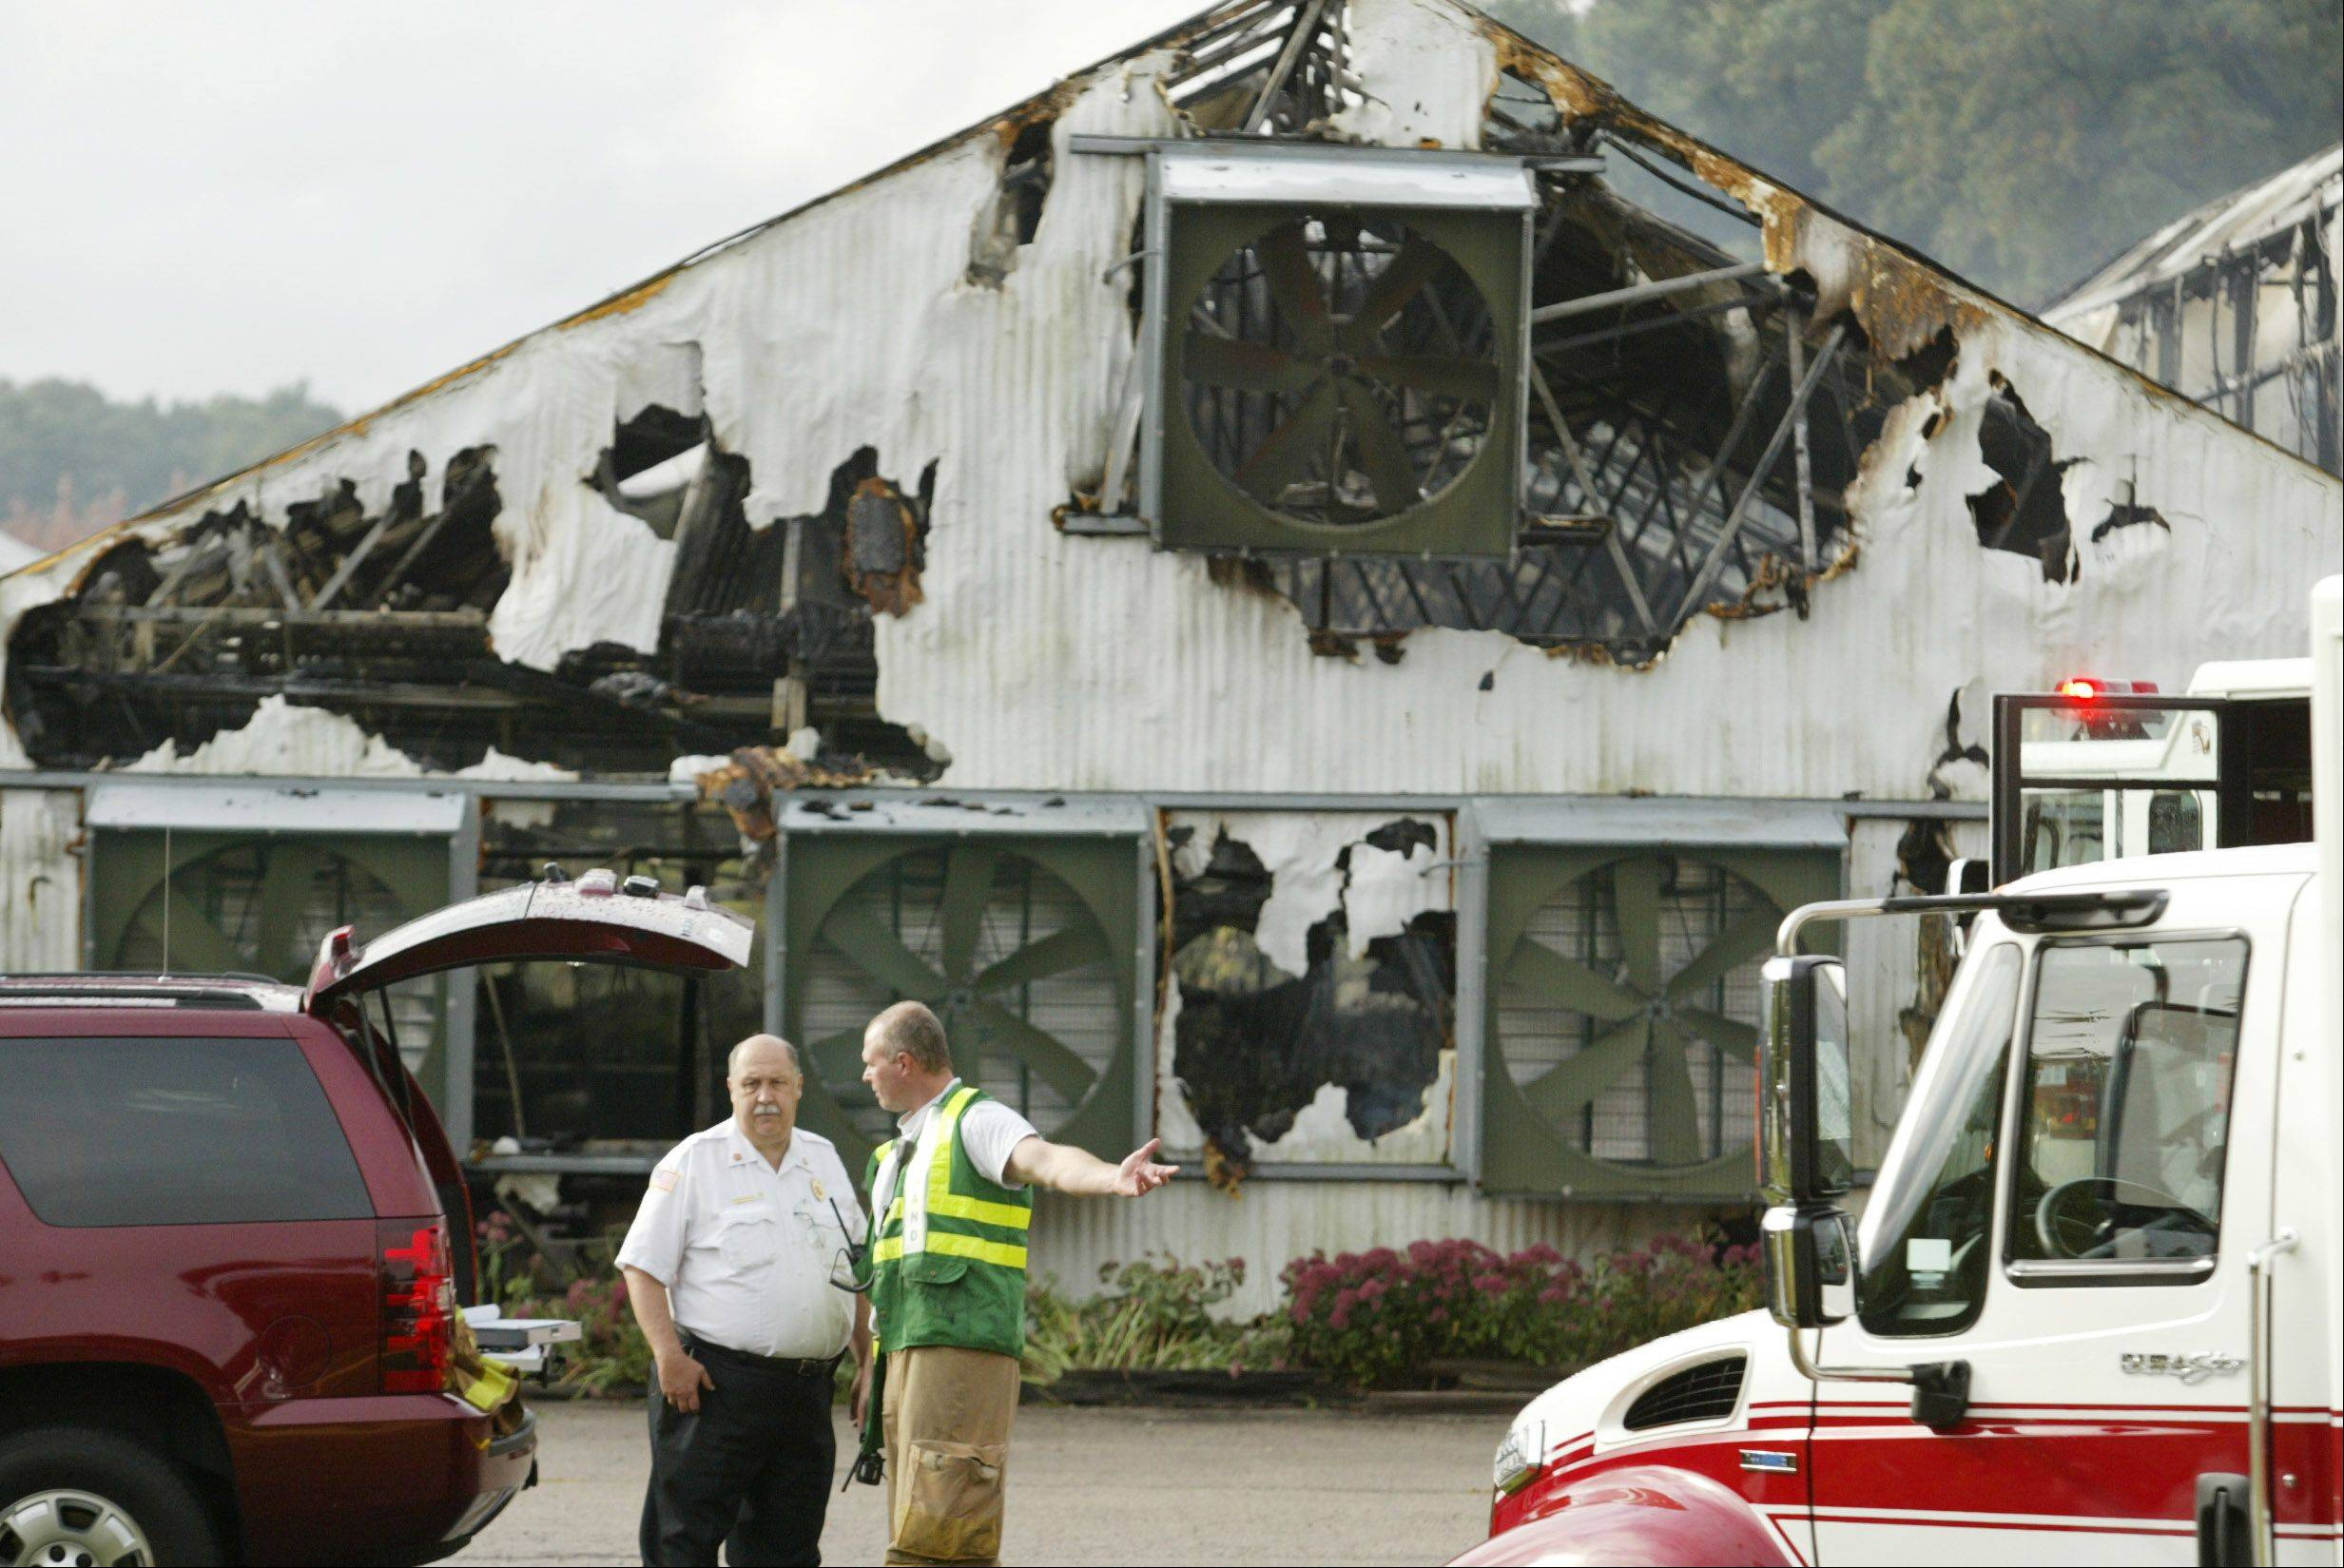 Fire officials work the scene of a fire Tuesday morning at Klehm Growers nursery in Hampshire. A large greenhouse was severely damaged.